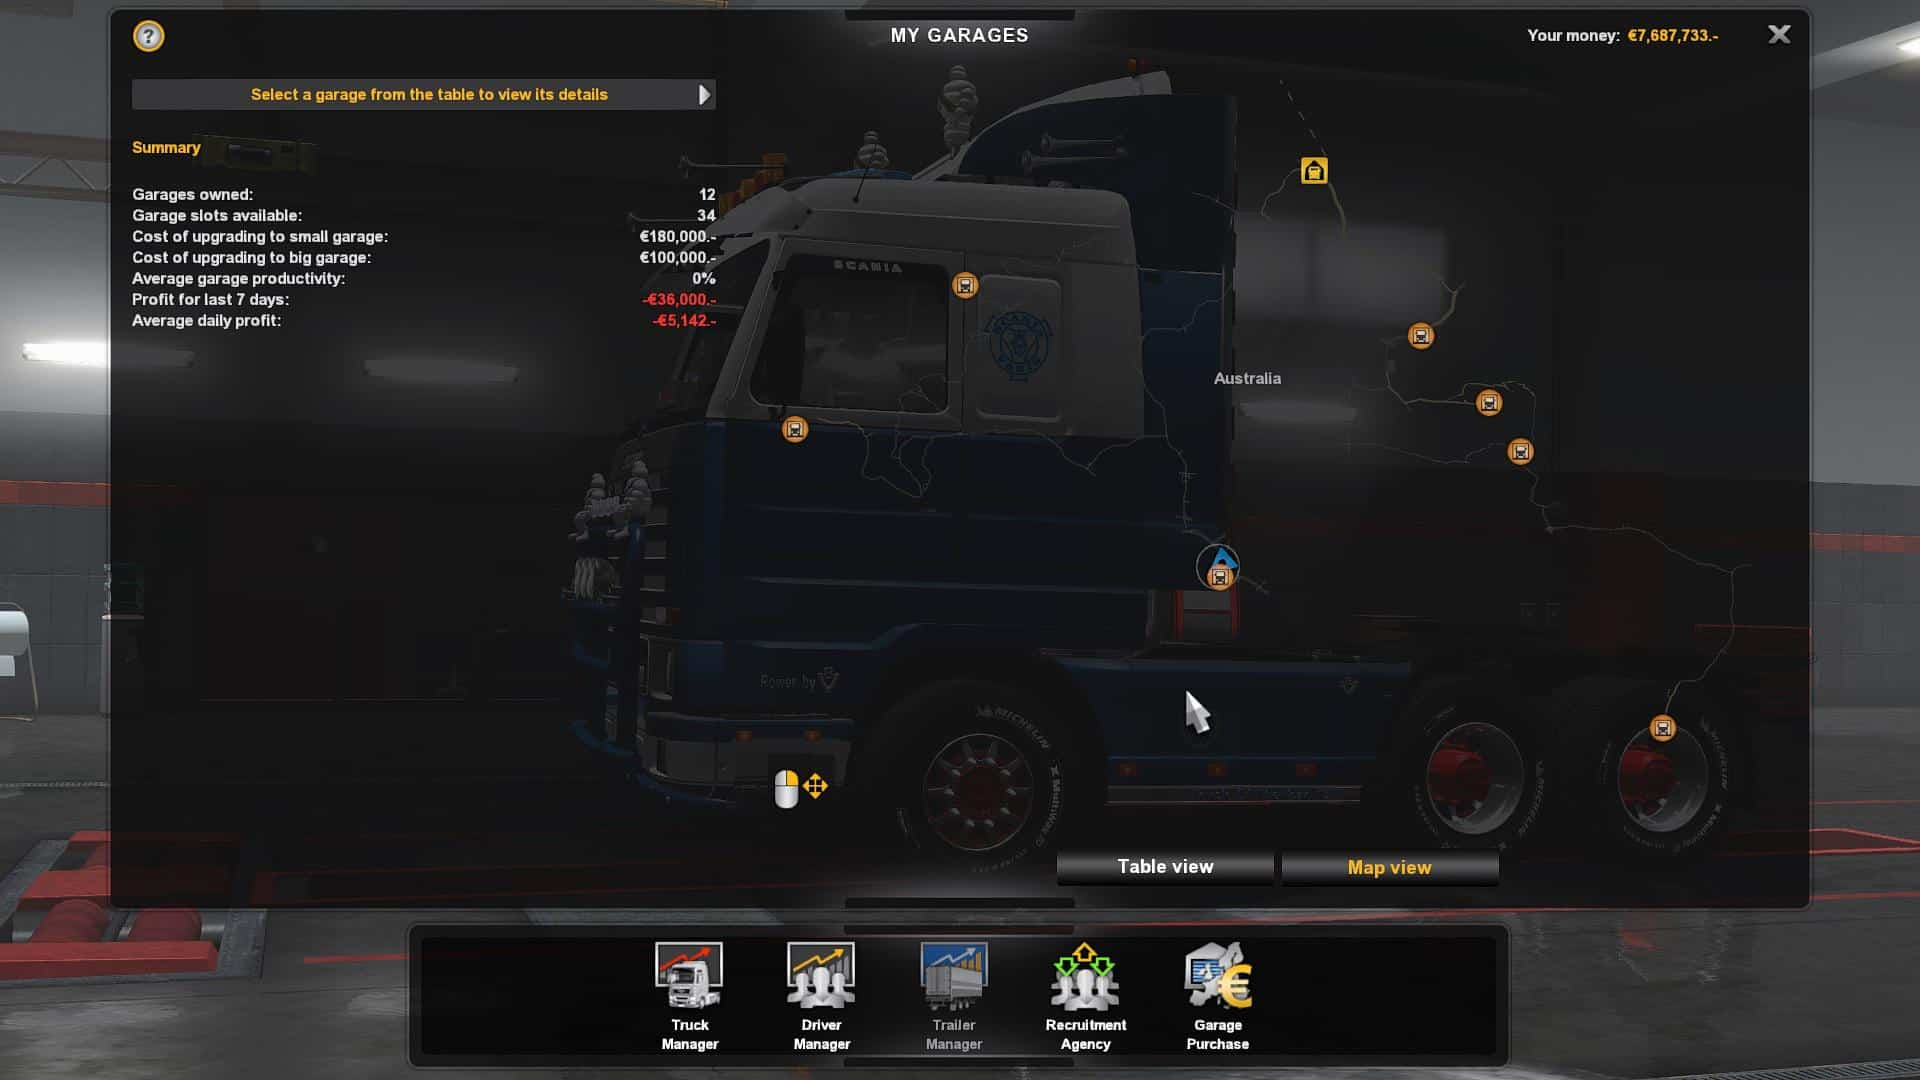 Australia Map Ets2.Save Game Profile For Australia Tasmania Map Ets2 1 35 Ets2 Mod